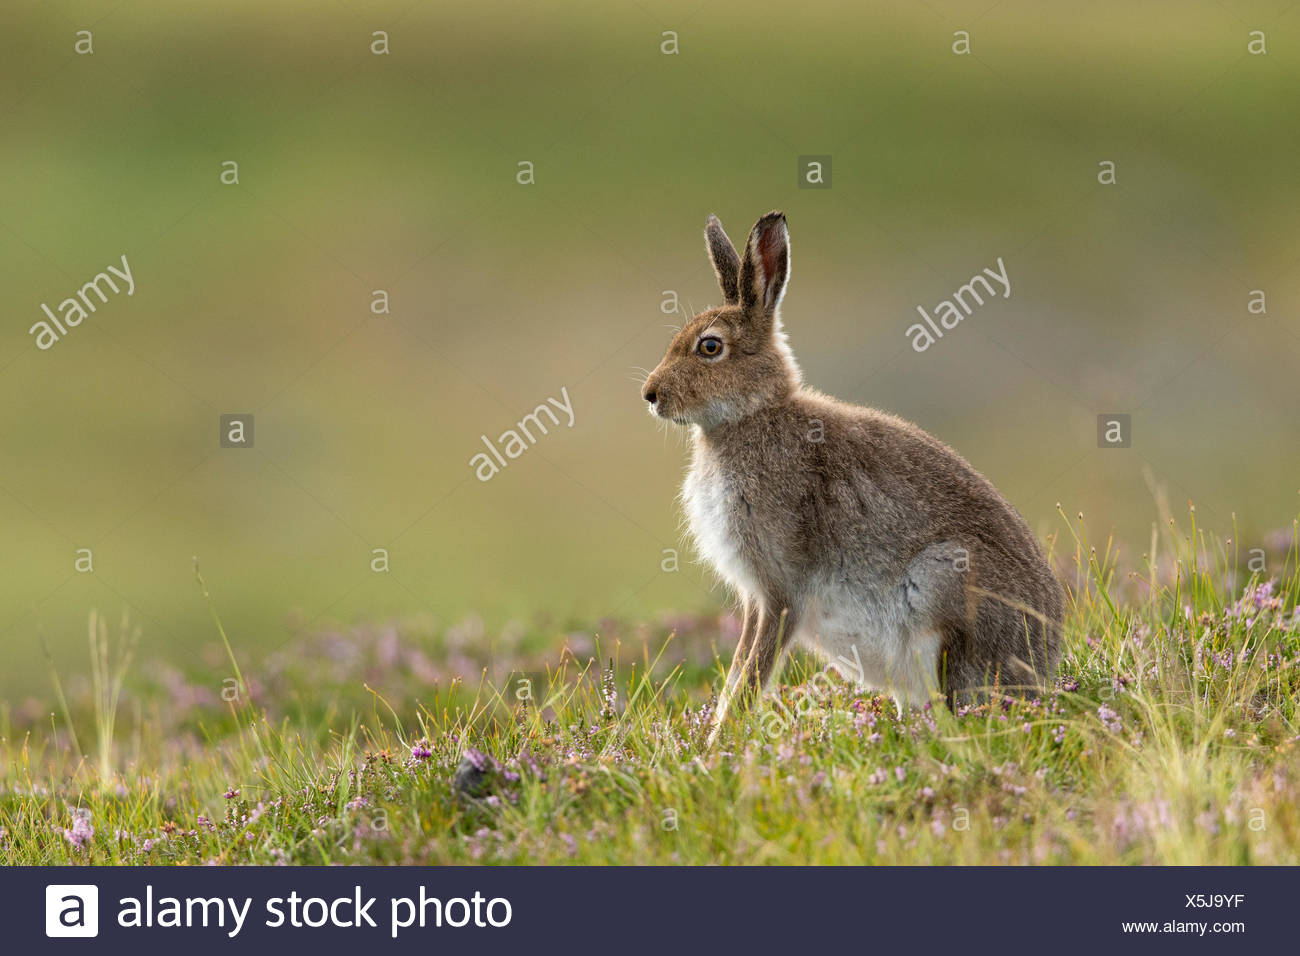 Mountain Hare (Lepus timidus) in summer pelage on heather moorland. Scotland, UK. - Stock Image